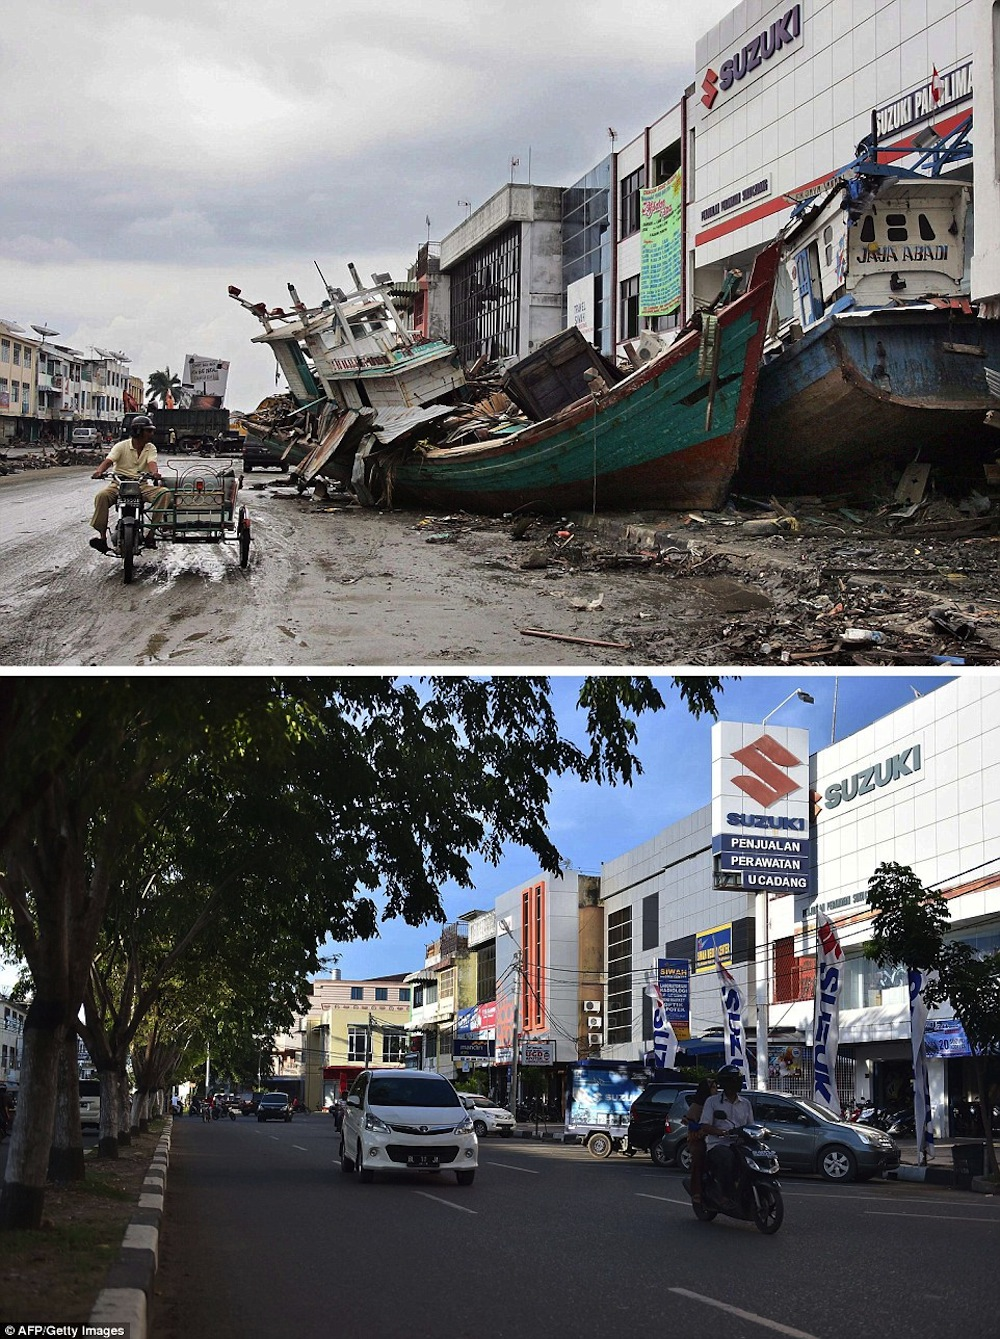 10 Amazing Before And After Shots Of The 2004 Tsunami In Aceh Wowshack